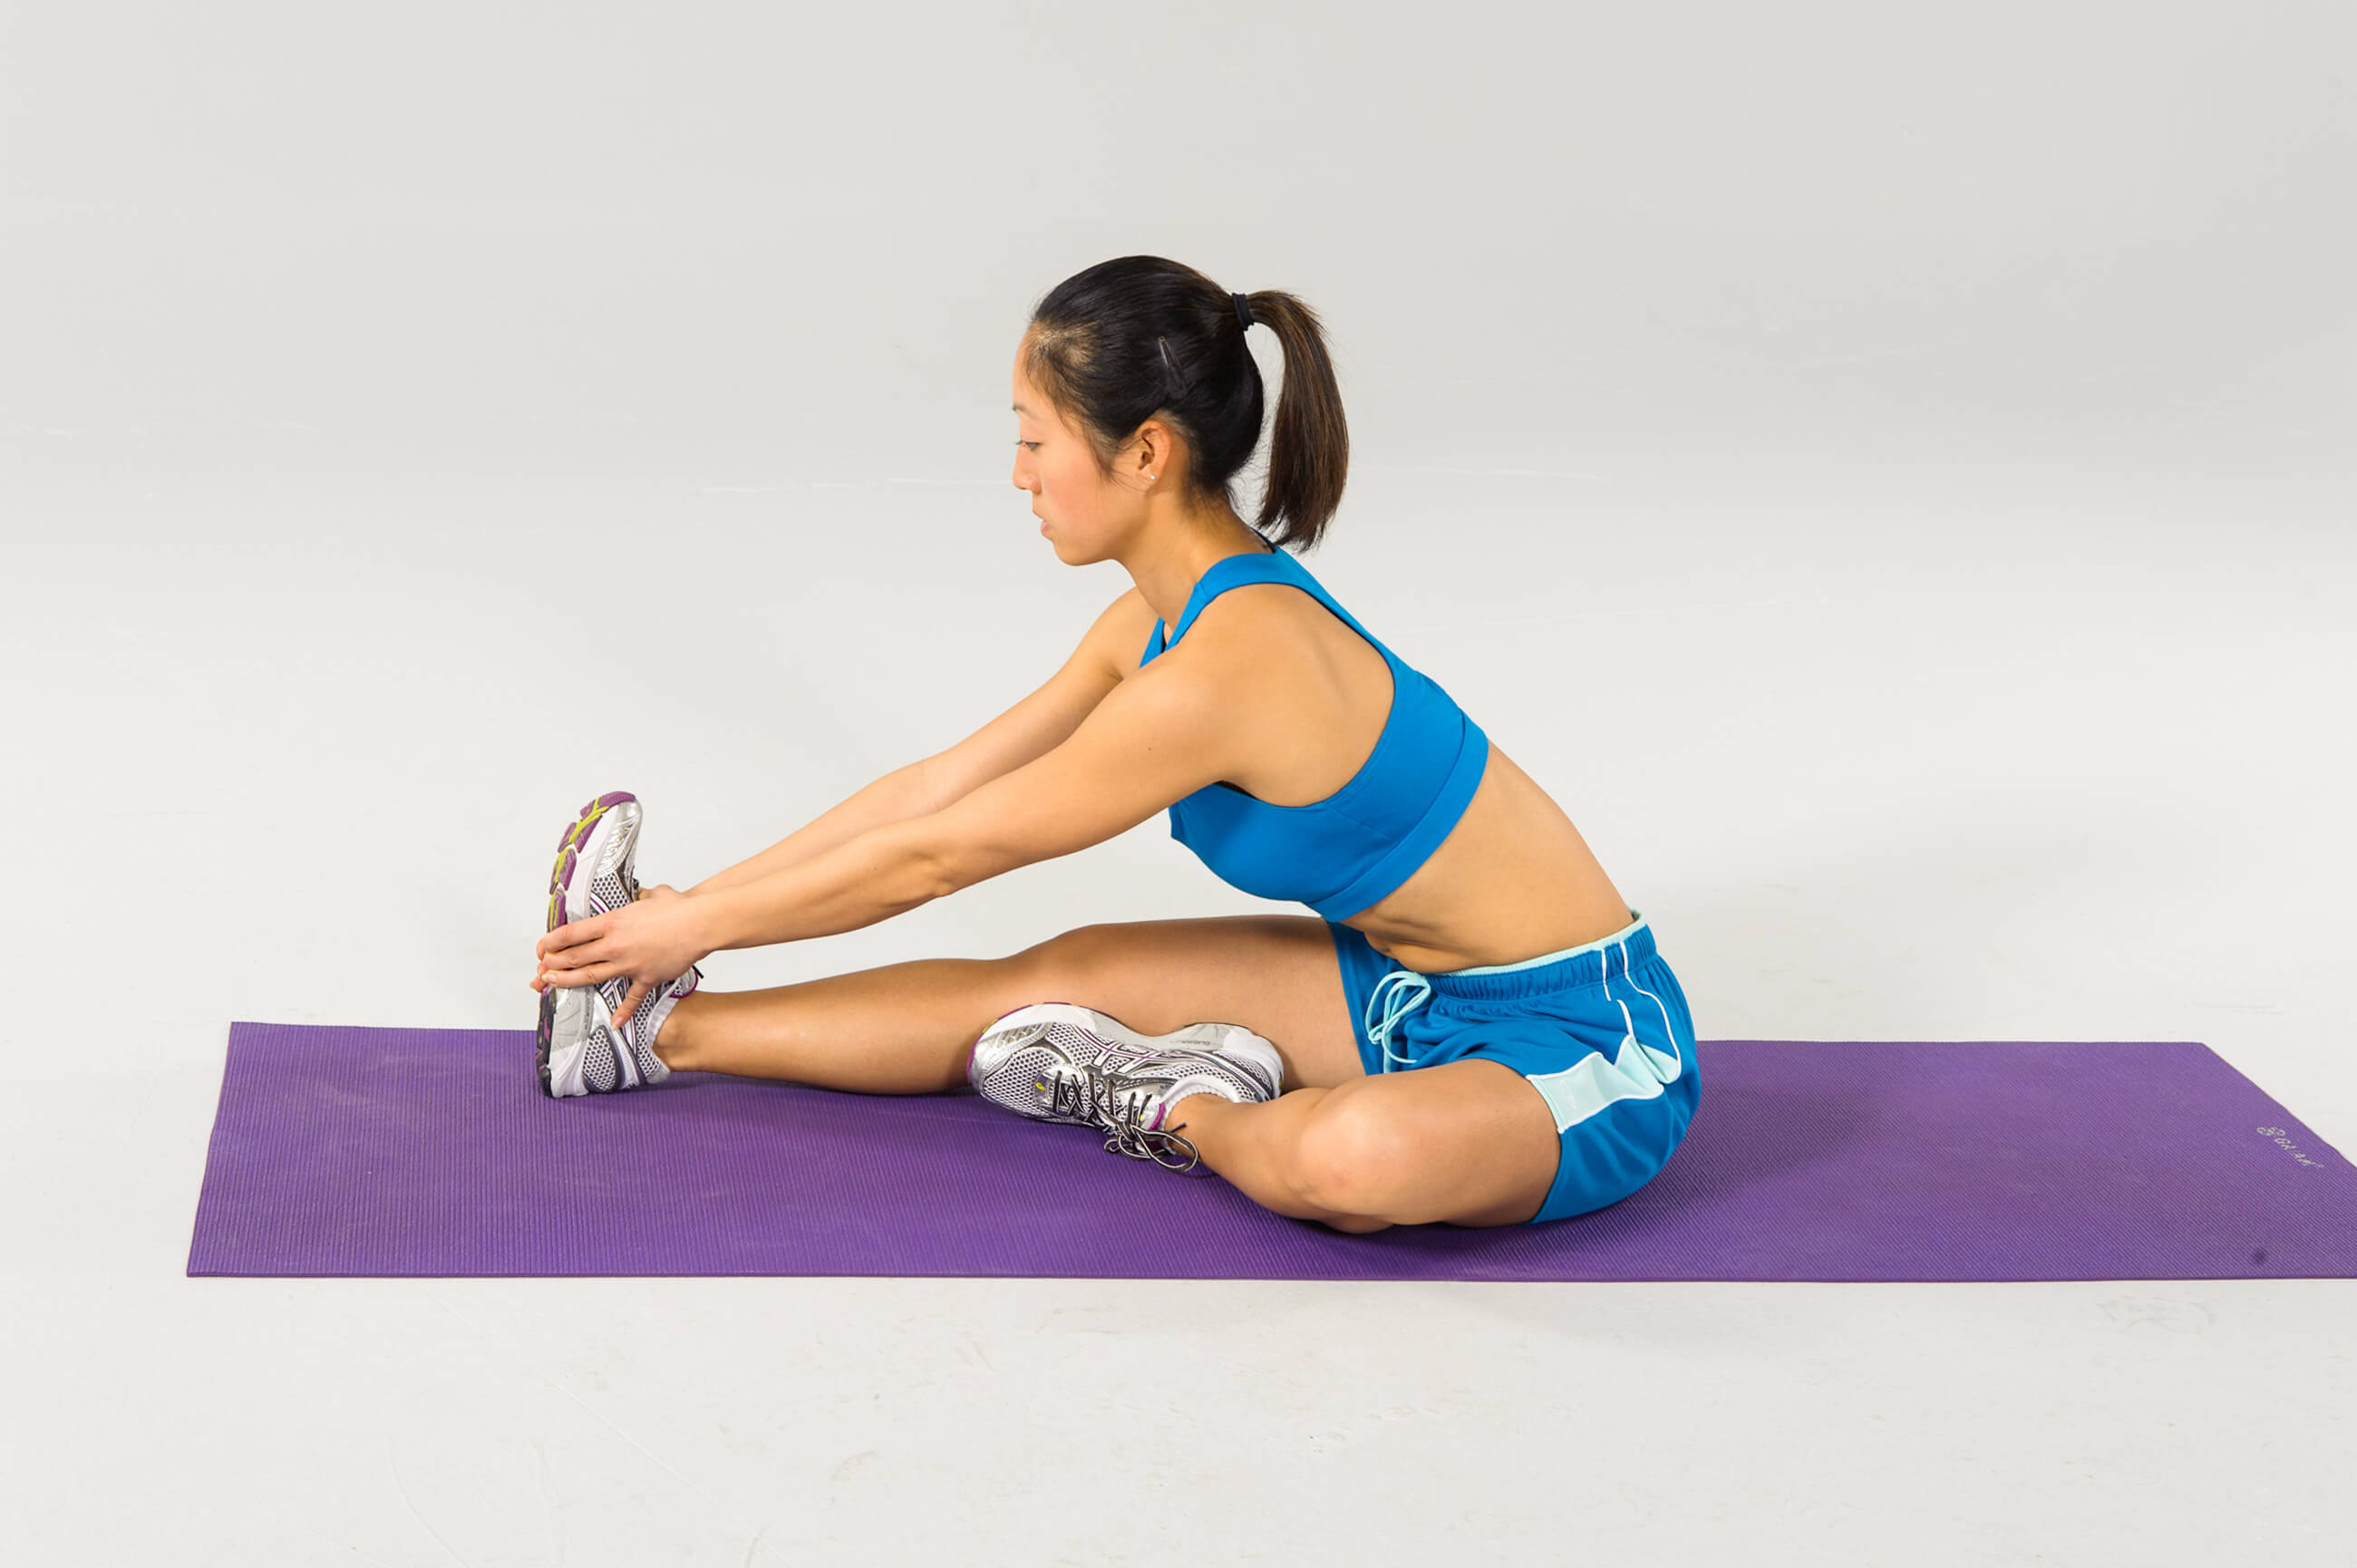 Static stretching vs. dynamic stretching: Which is the best?